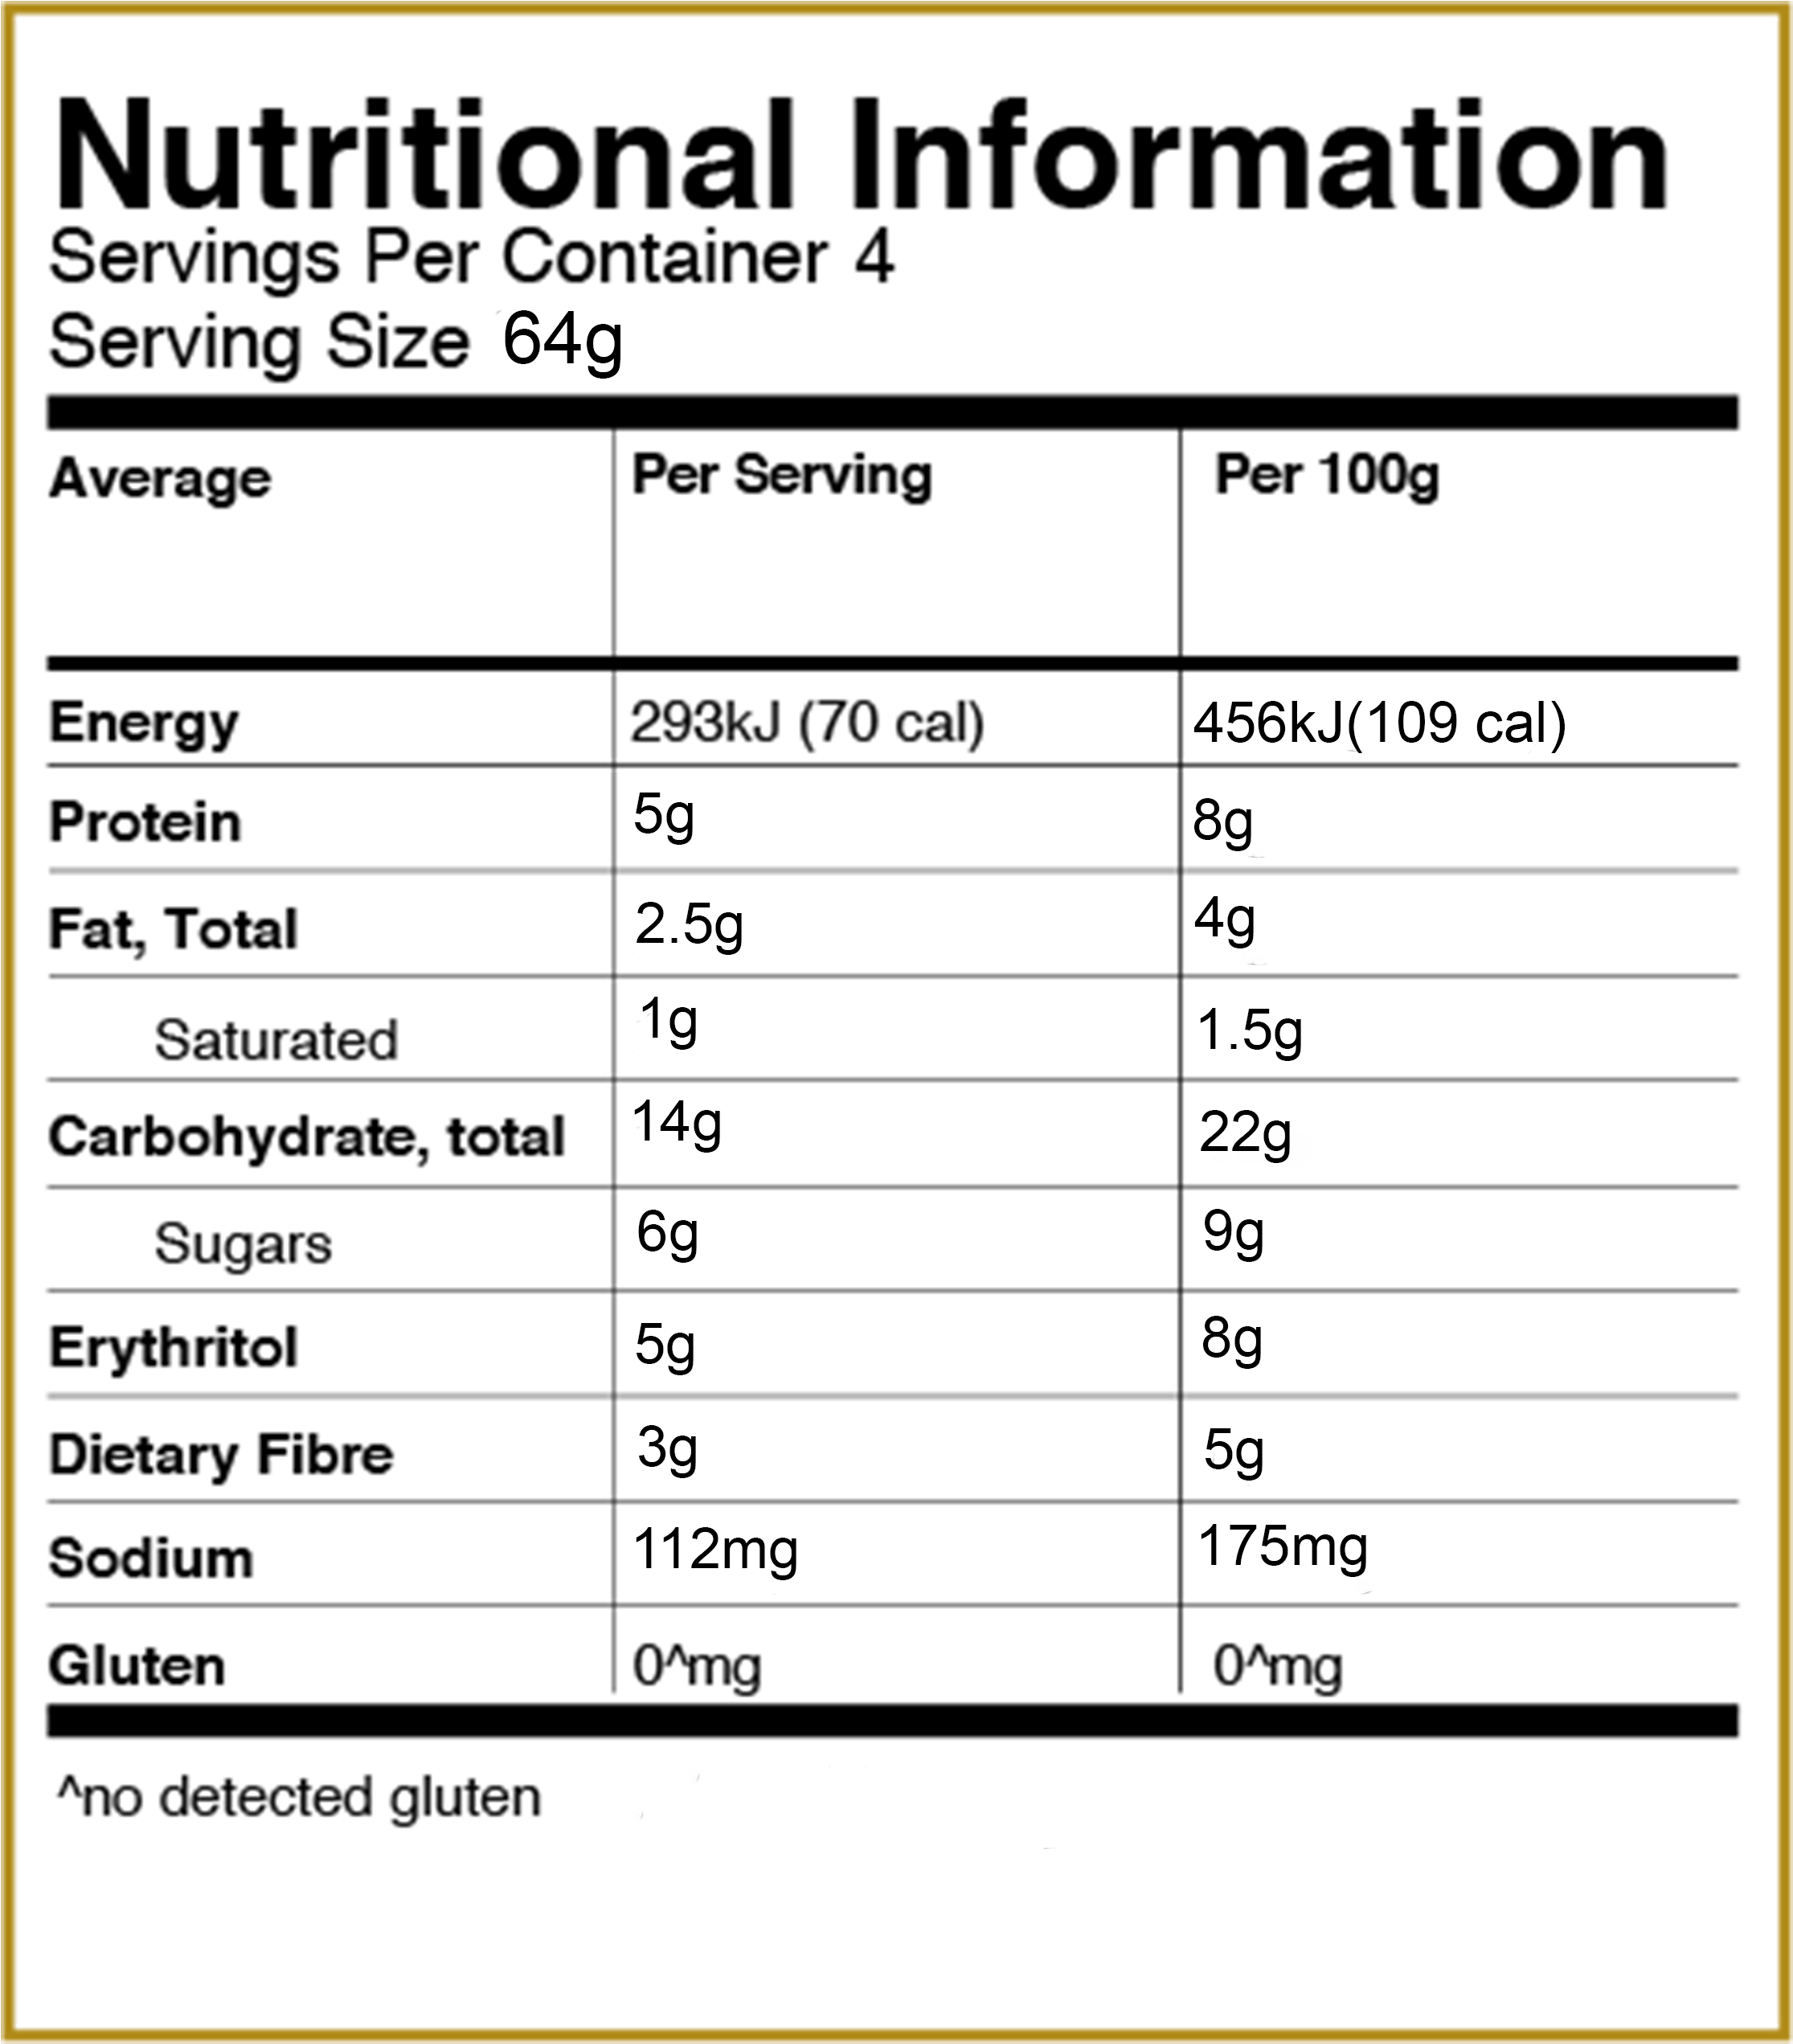 Birthday Cake Png View Nutrition Facts Nutrition Facts 935153 Vippng